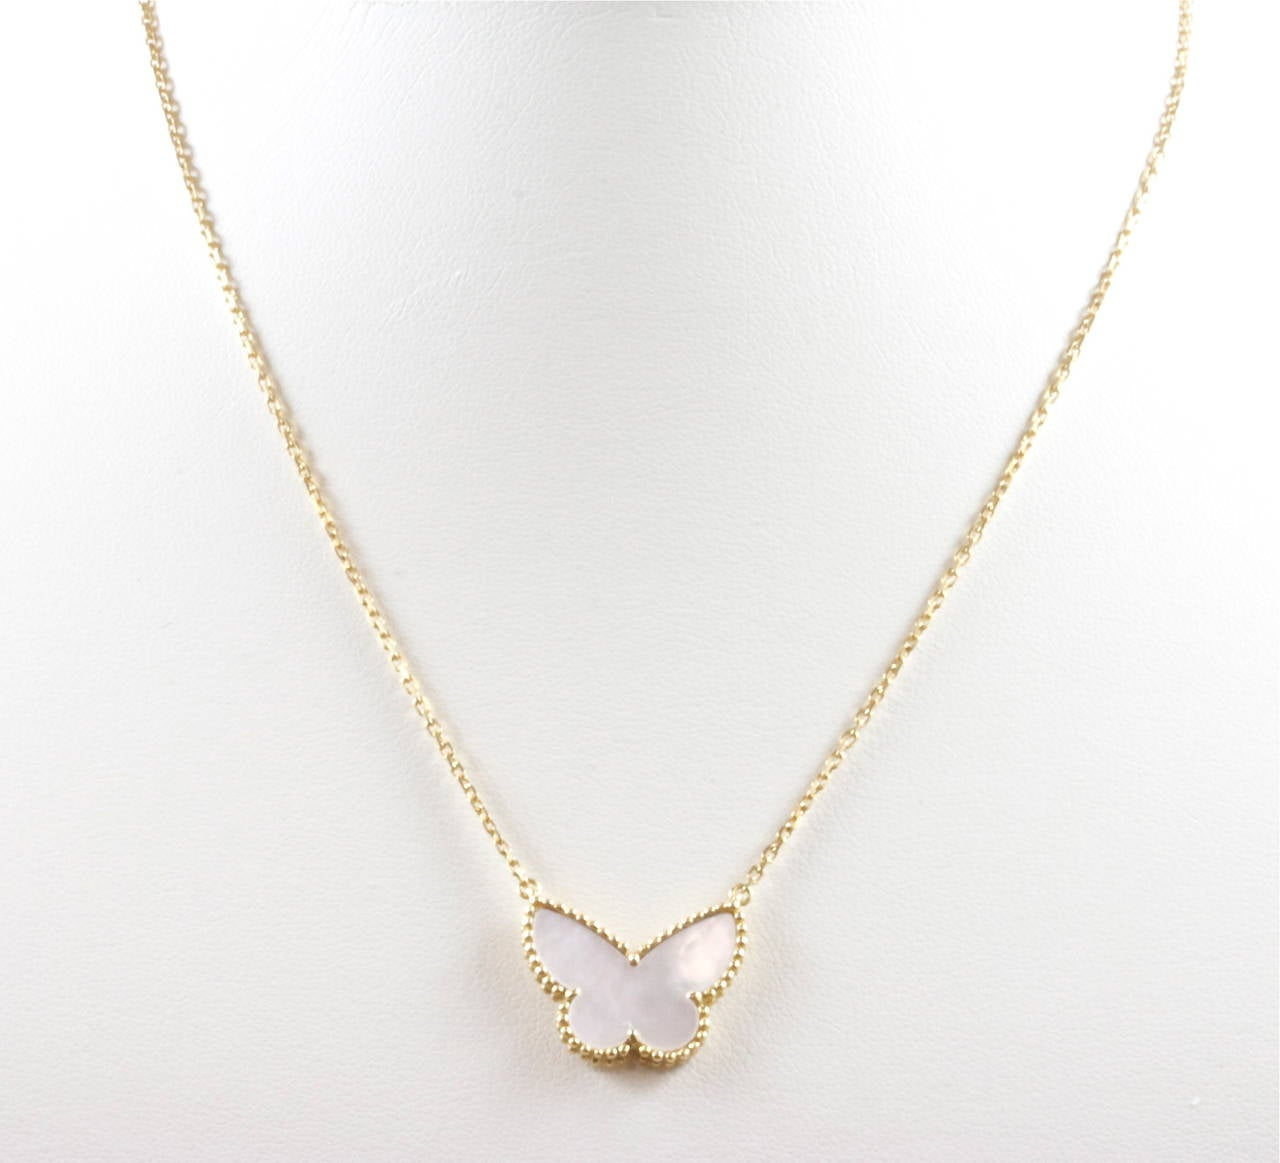 Van Cleef Lucky Alhambra Necklace: Van Cleef And Arpels Lucky Alhambra Mother-of-Pearl Gold